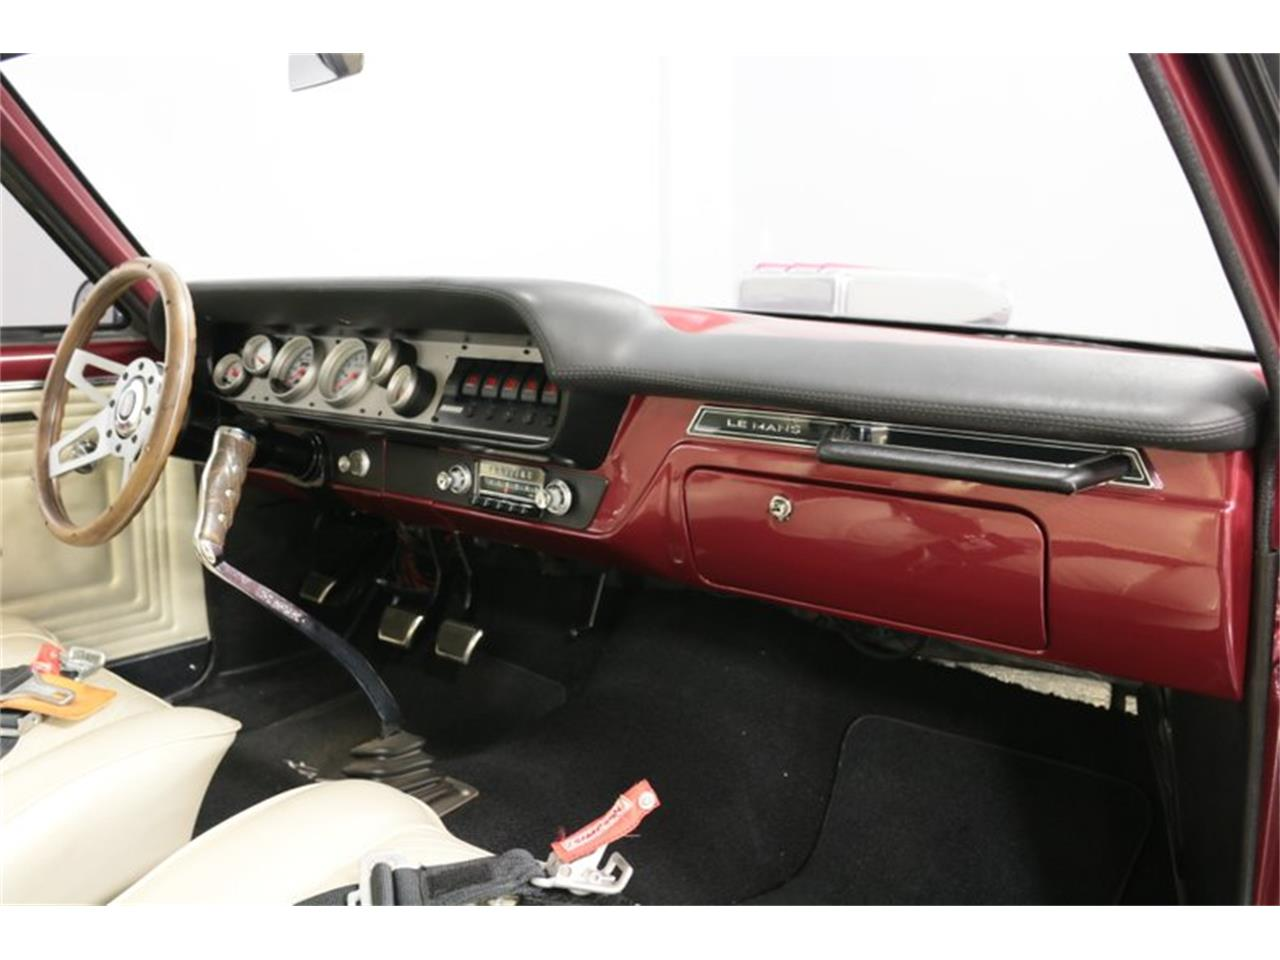 Large Picture of Classic '65 Pontiac LeMans Offered by Streetside Classics - Dallas / Fort Worth - Q507